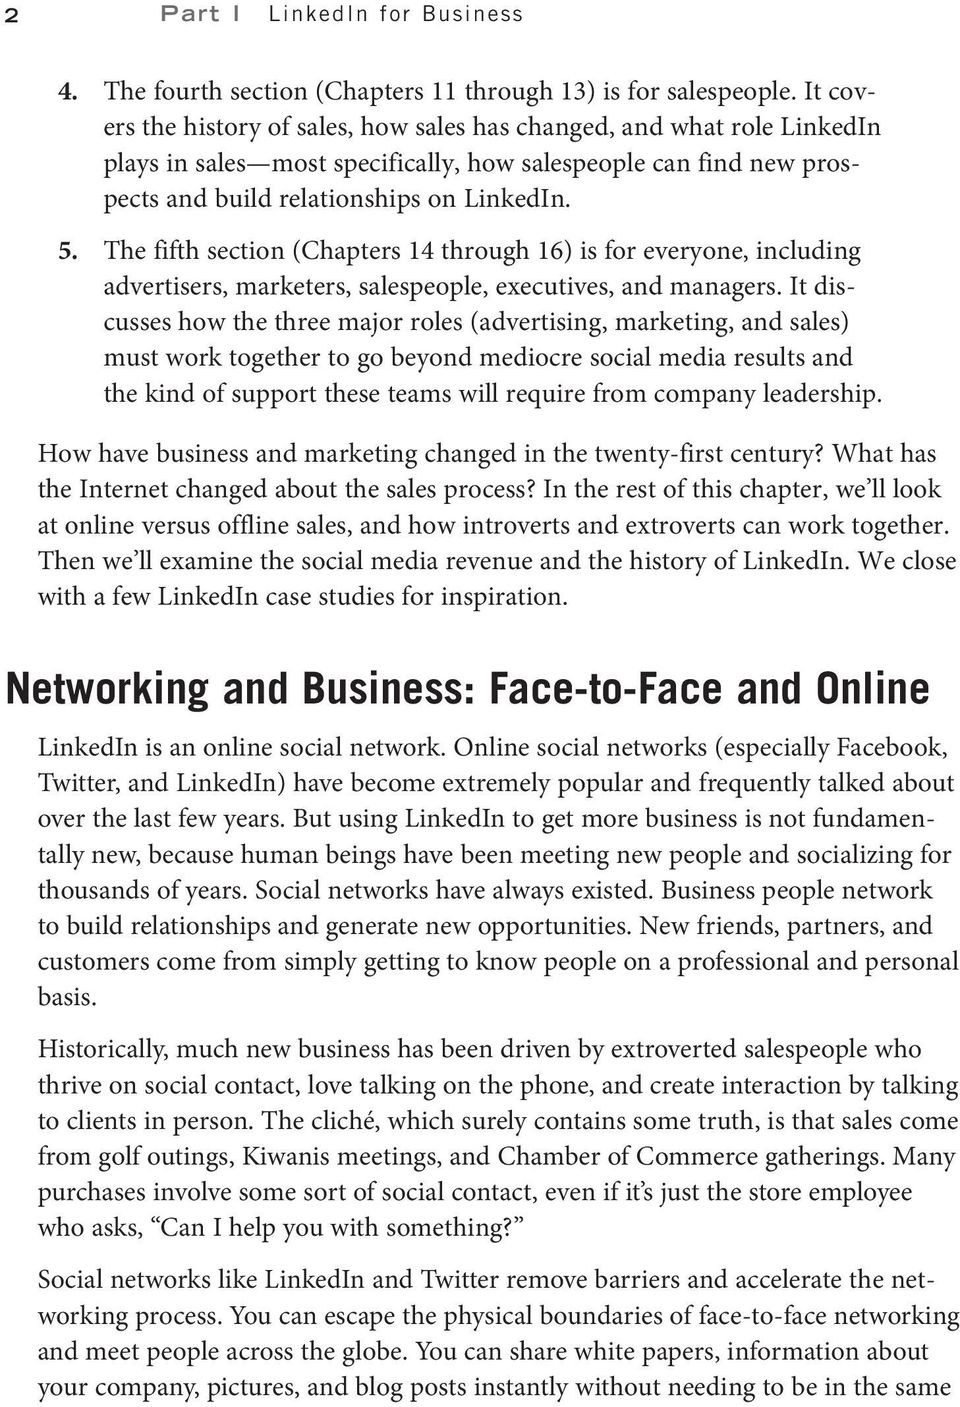 The fifth section (Chapters 14 through 16) is for everyone, including advertisers, marketers, salespeople, executives, and managers.